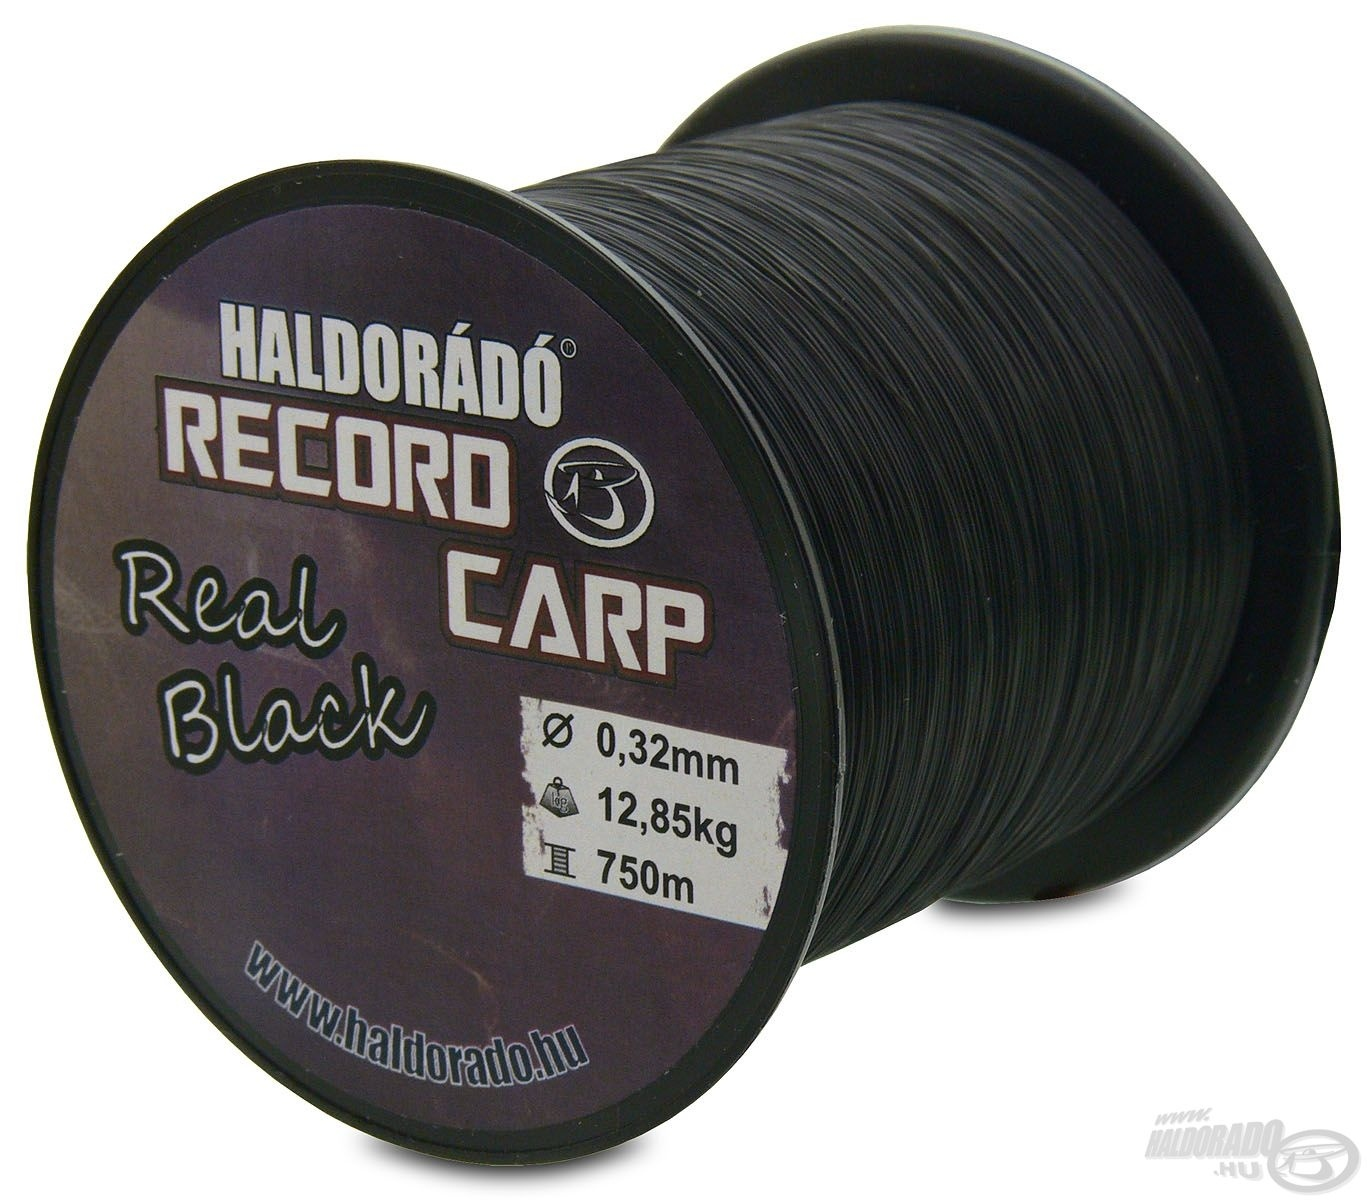 HALDOR�D� Record Carp Real Black 1990Ft